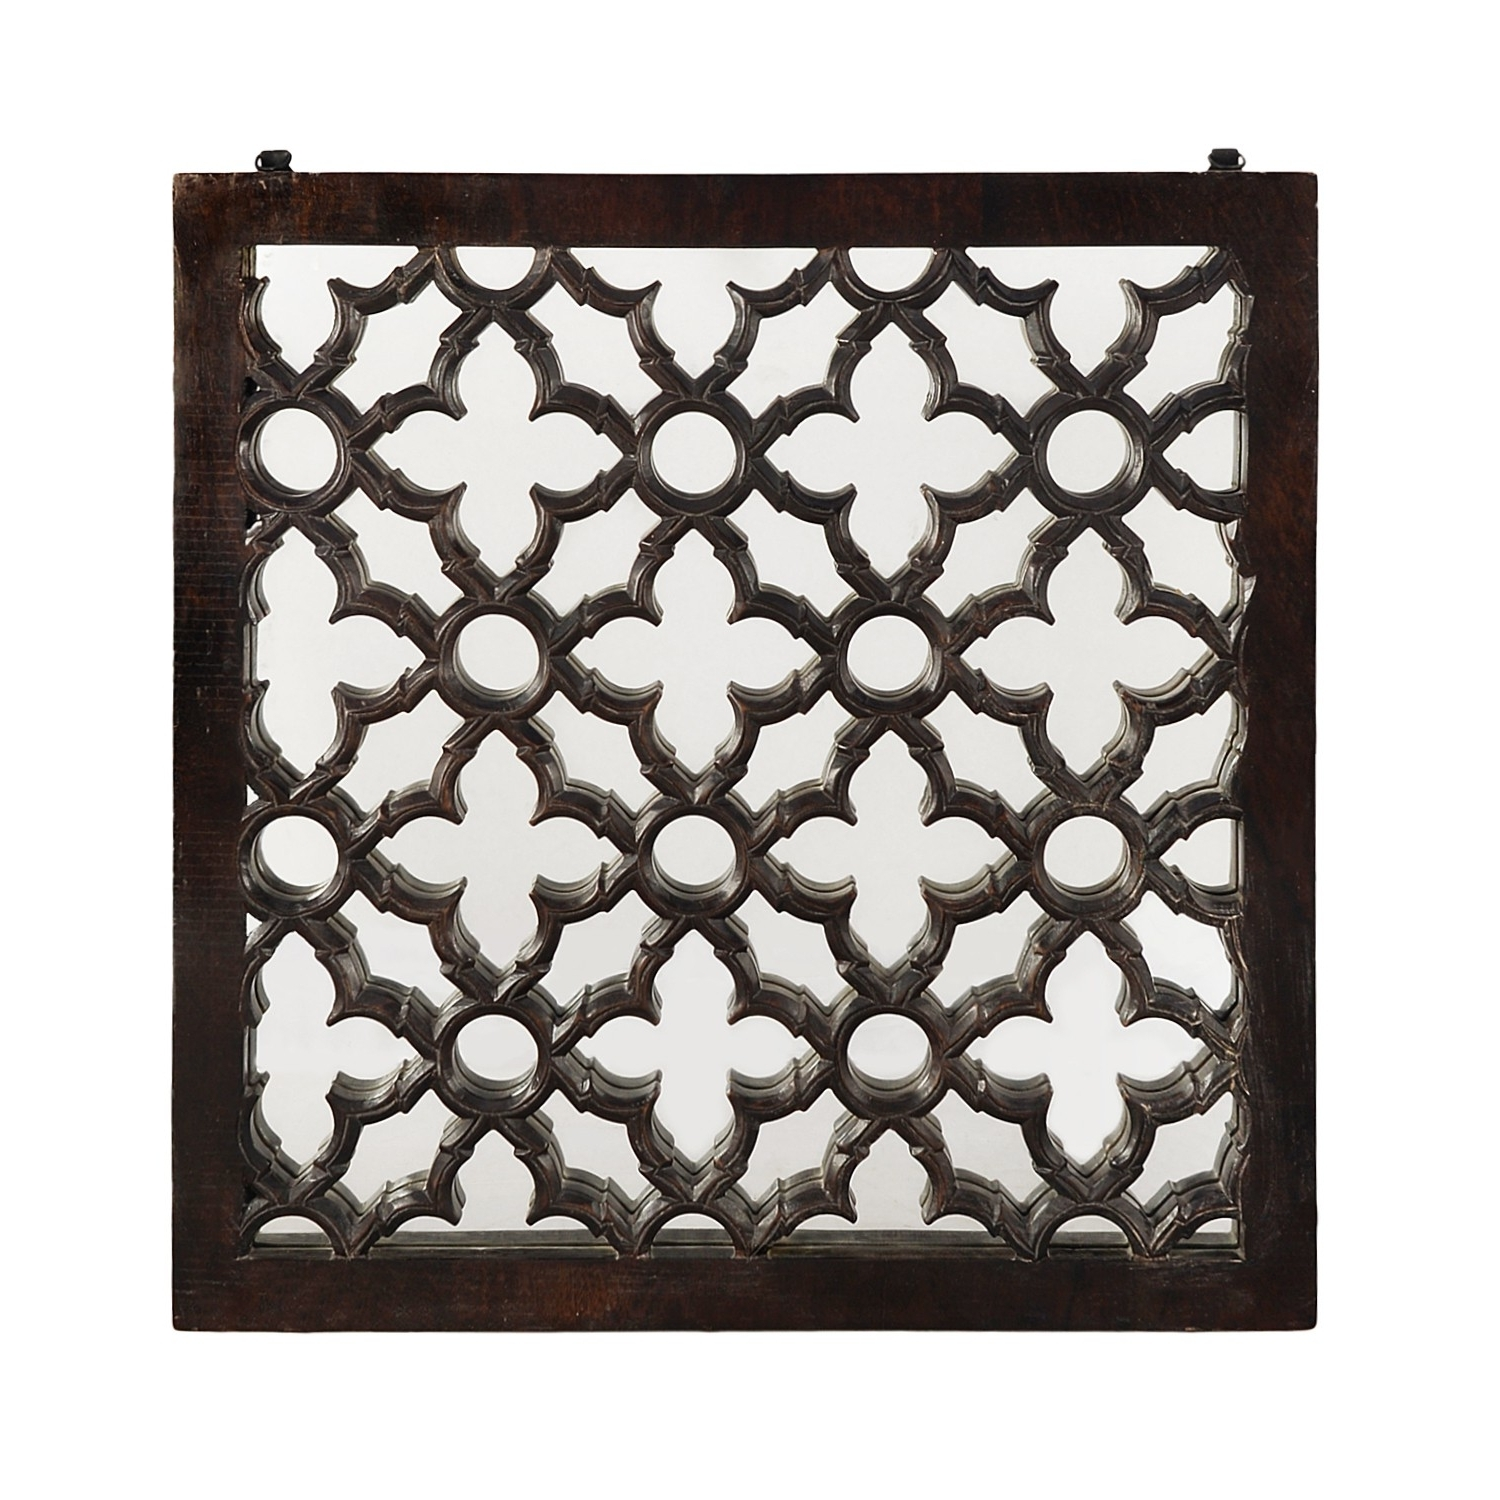 Preferred Buy Wall Art Online In India – The Yellow Door Store Inside Moroccan Metal Wall Art (View 12 of 15)